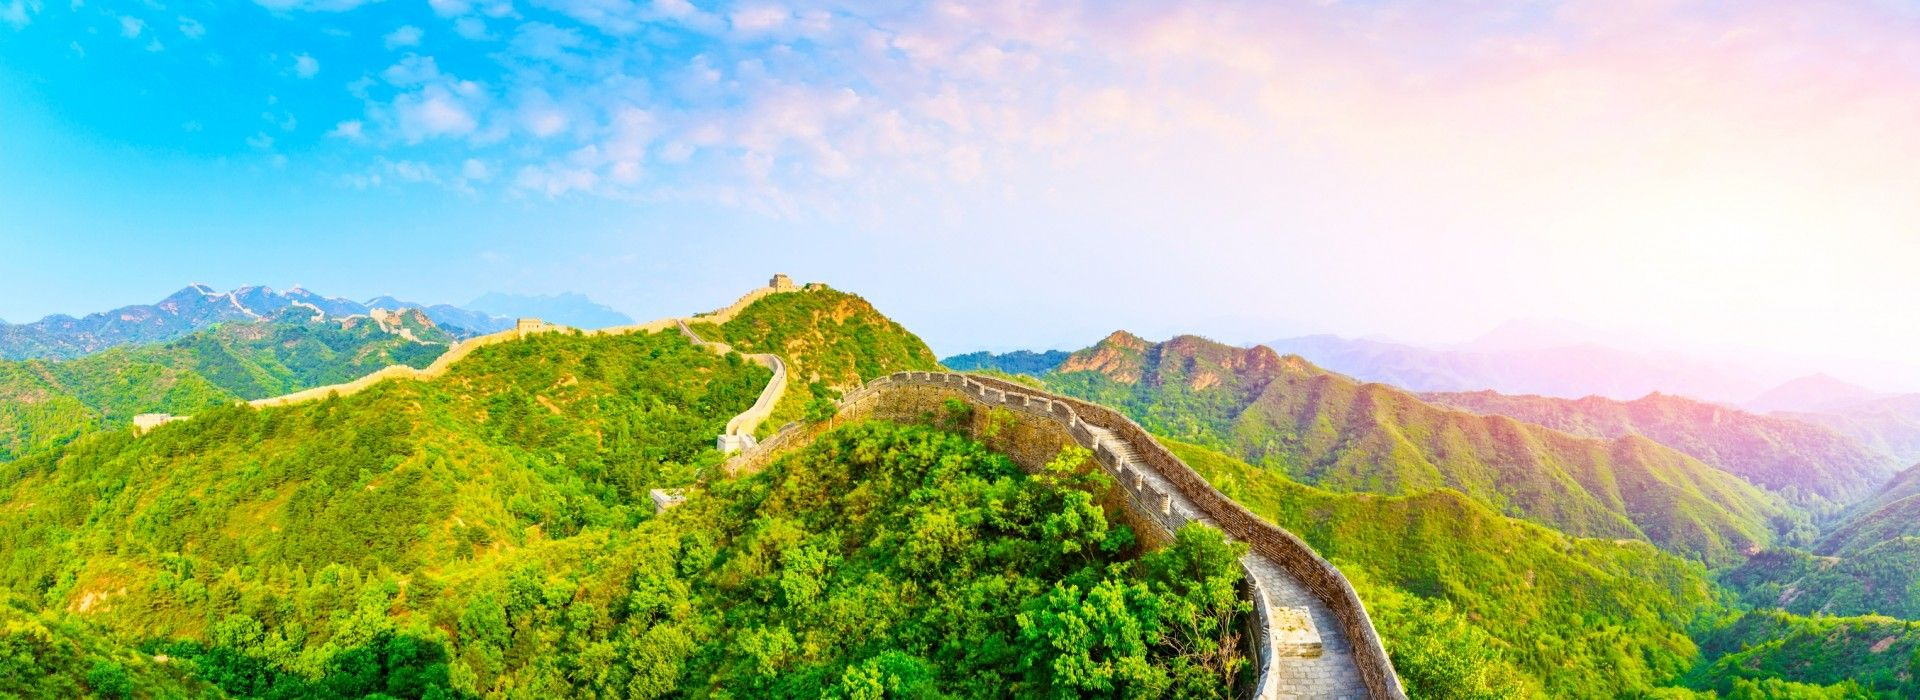 Sightseeing Tours in Chengdu